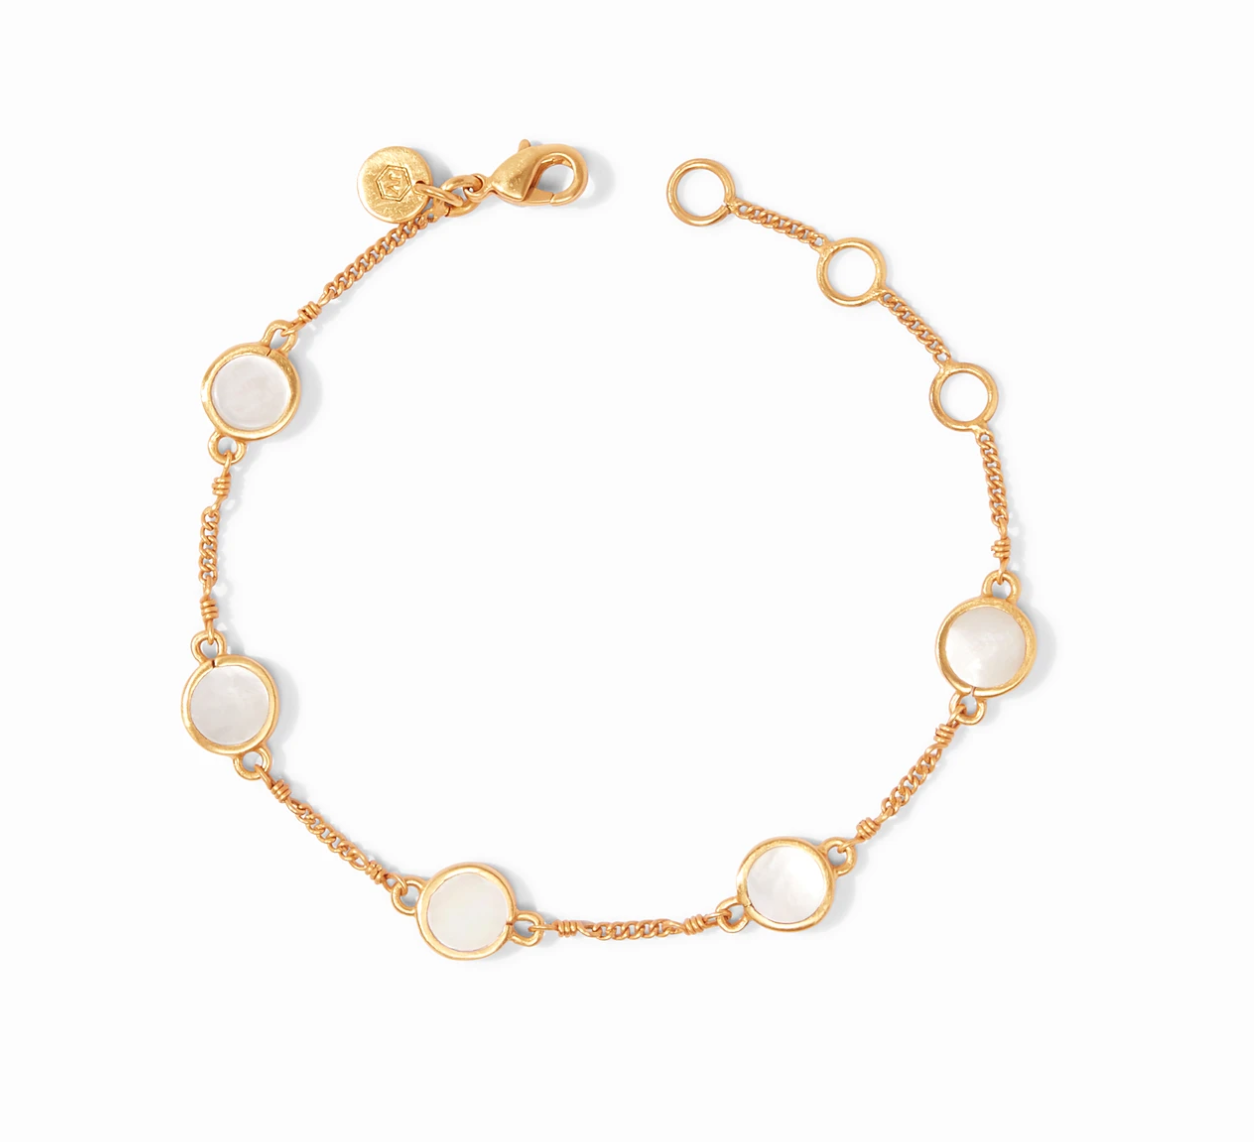 Valencia Delicate Bracelet with Mother of Pearl